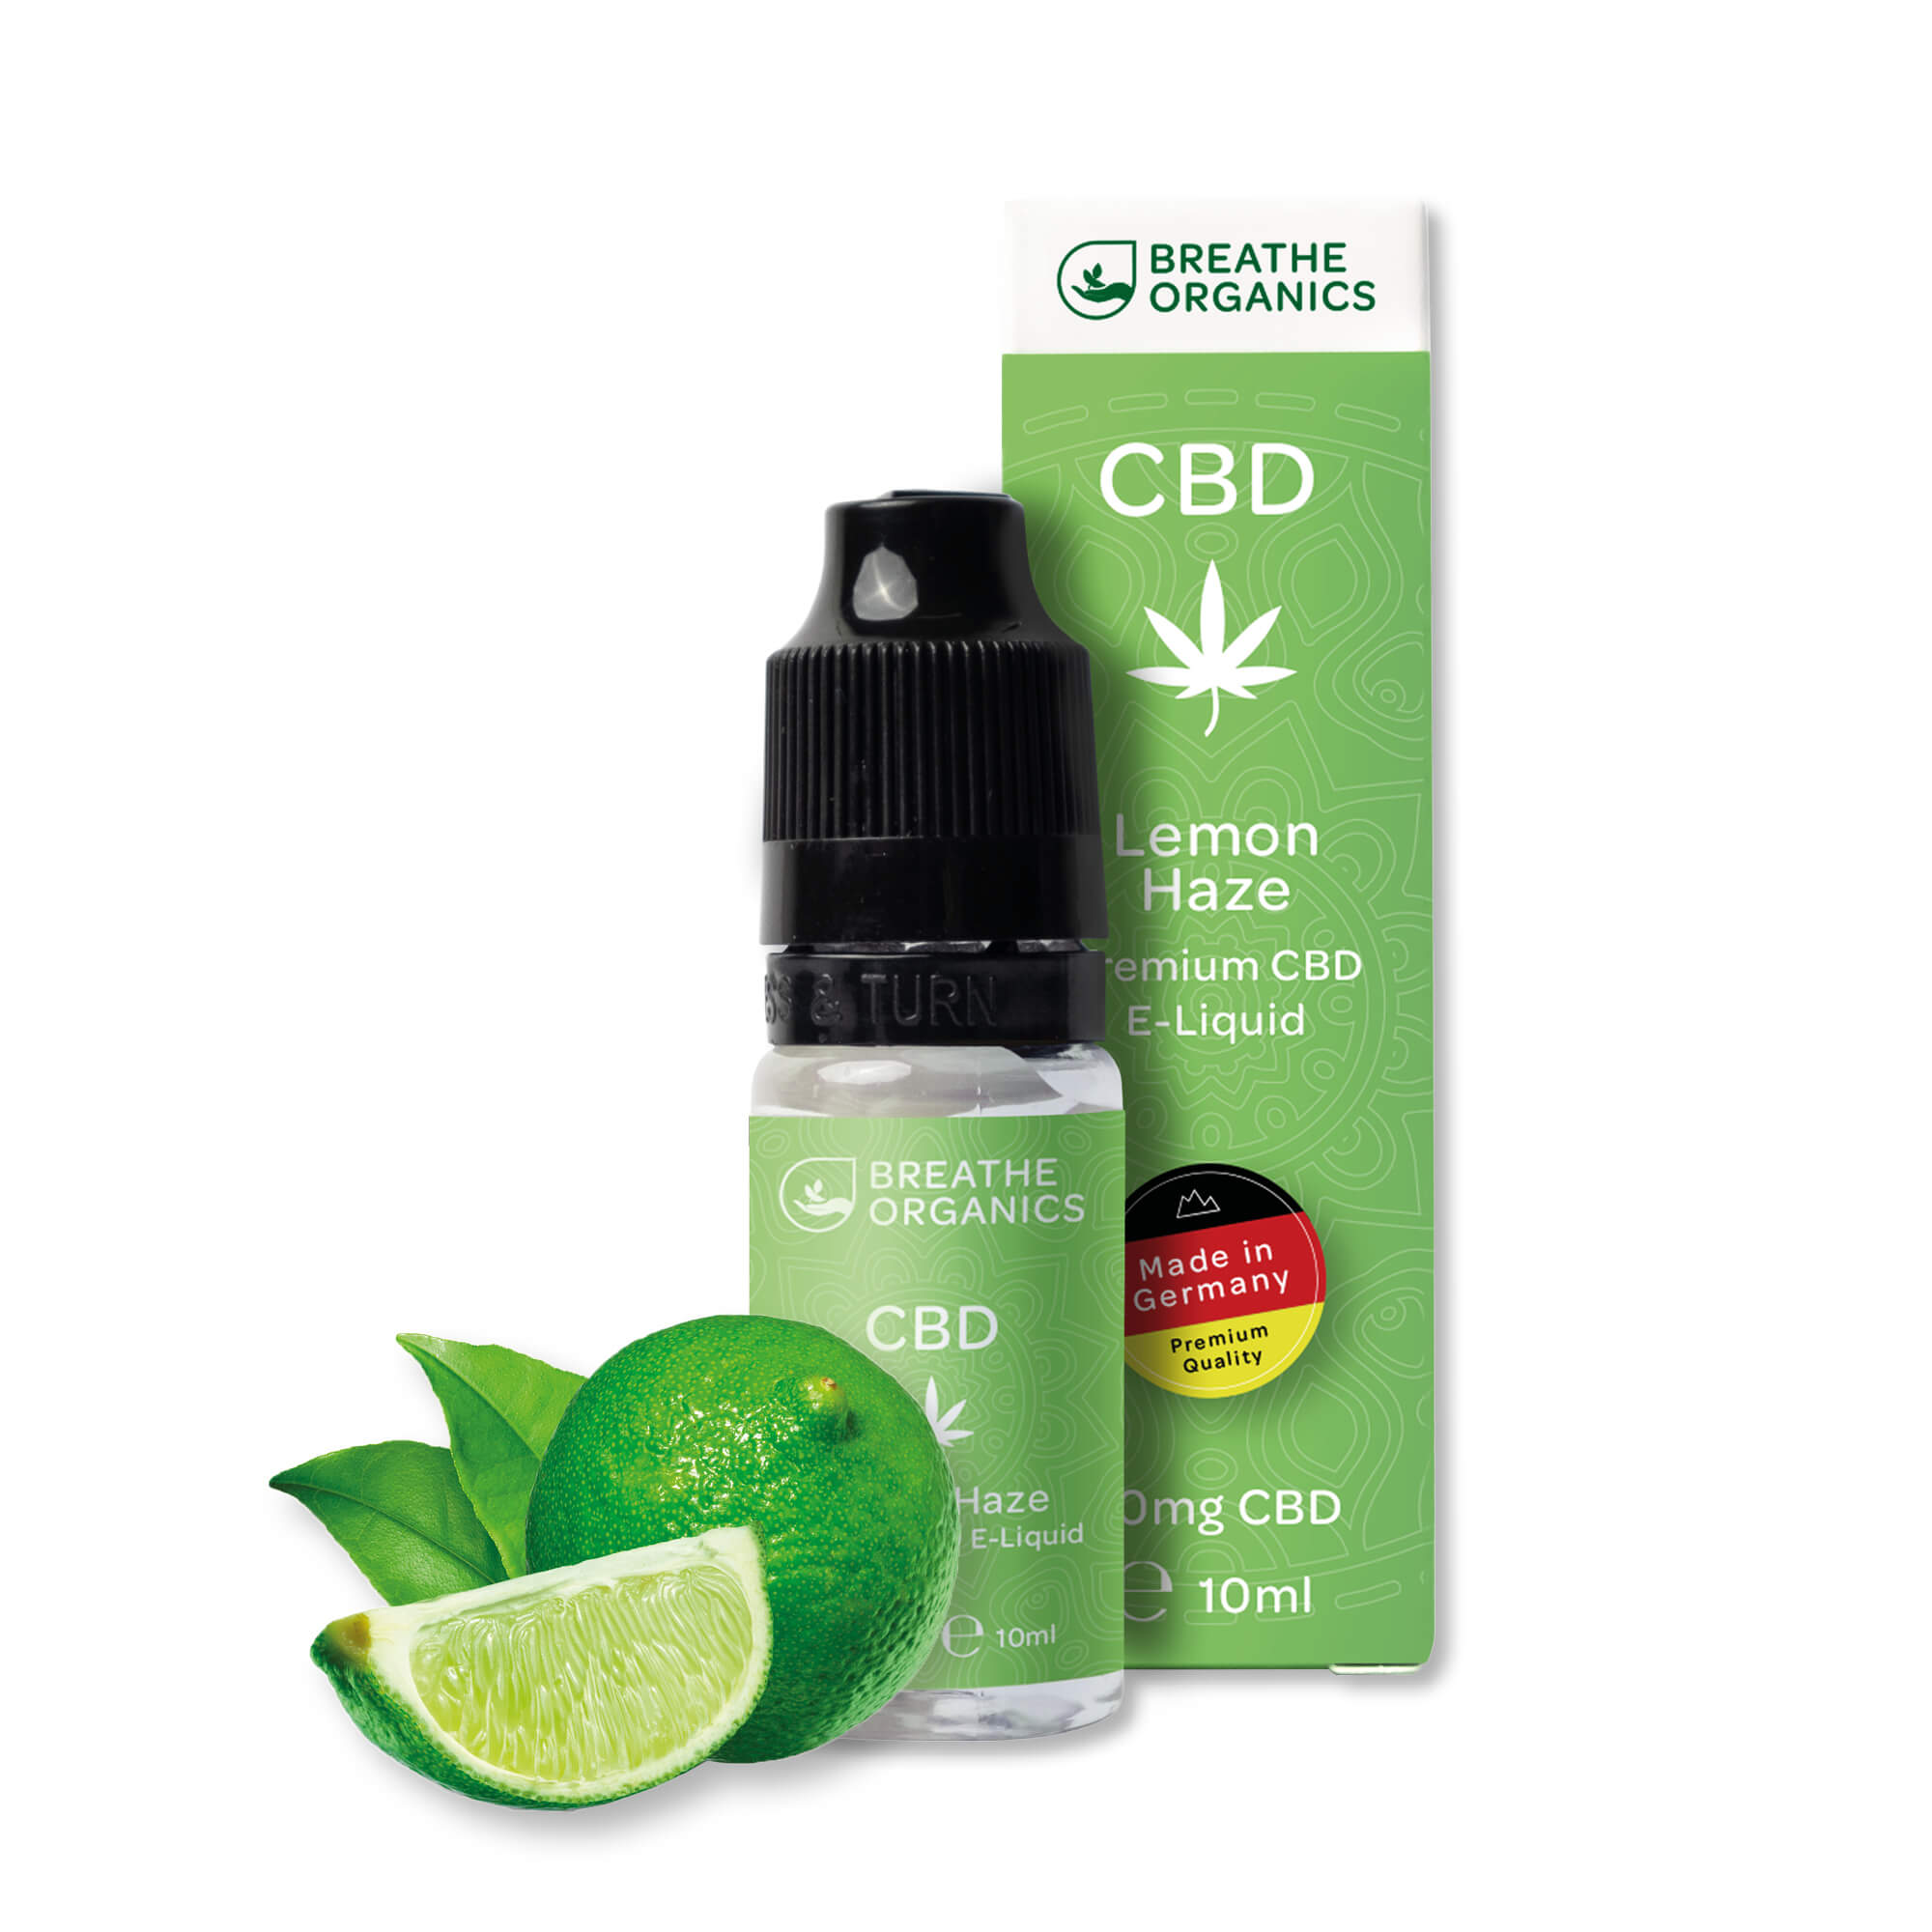 Breathe Organics - CBD Liquid Lemon Haze 300mg